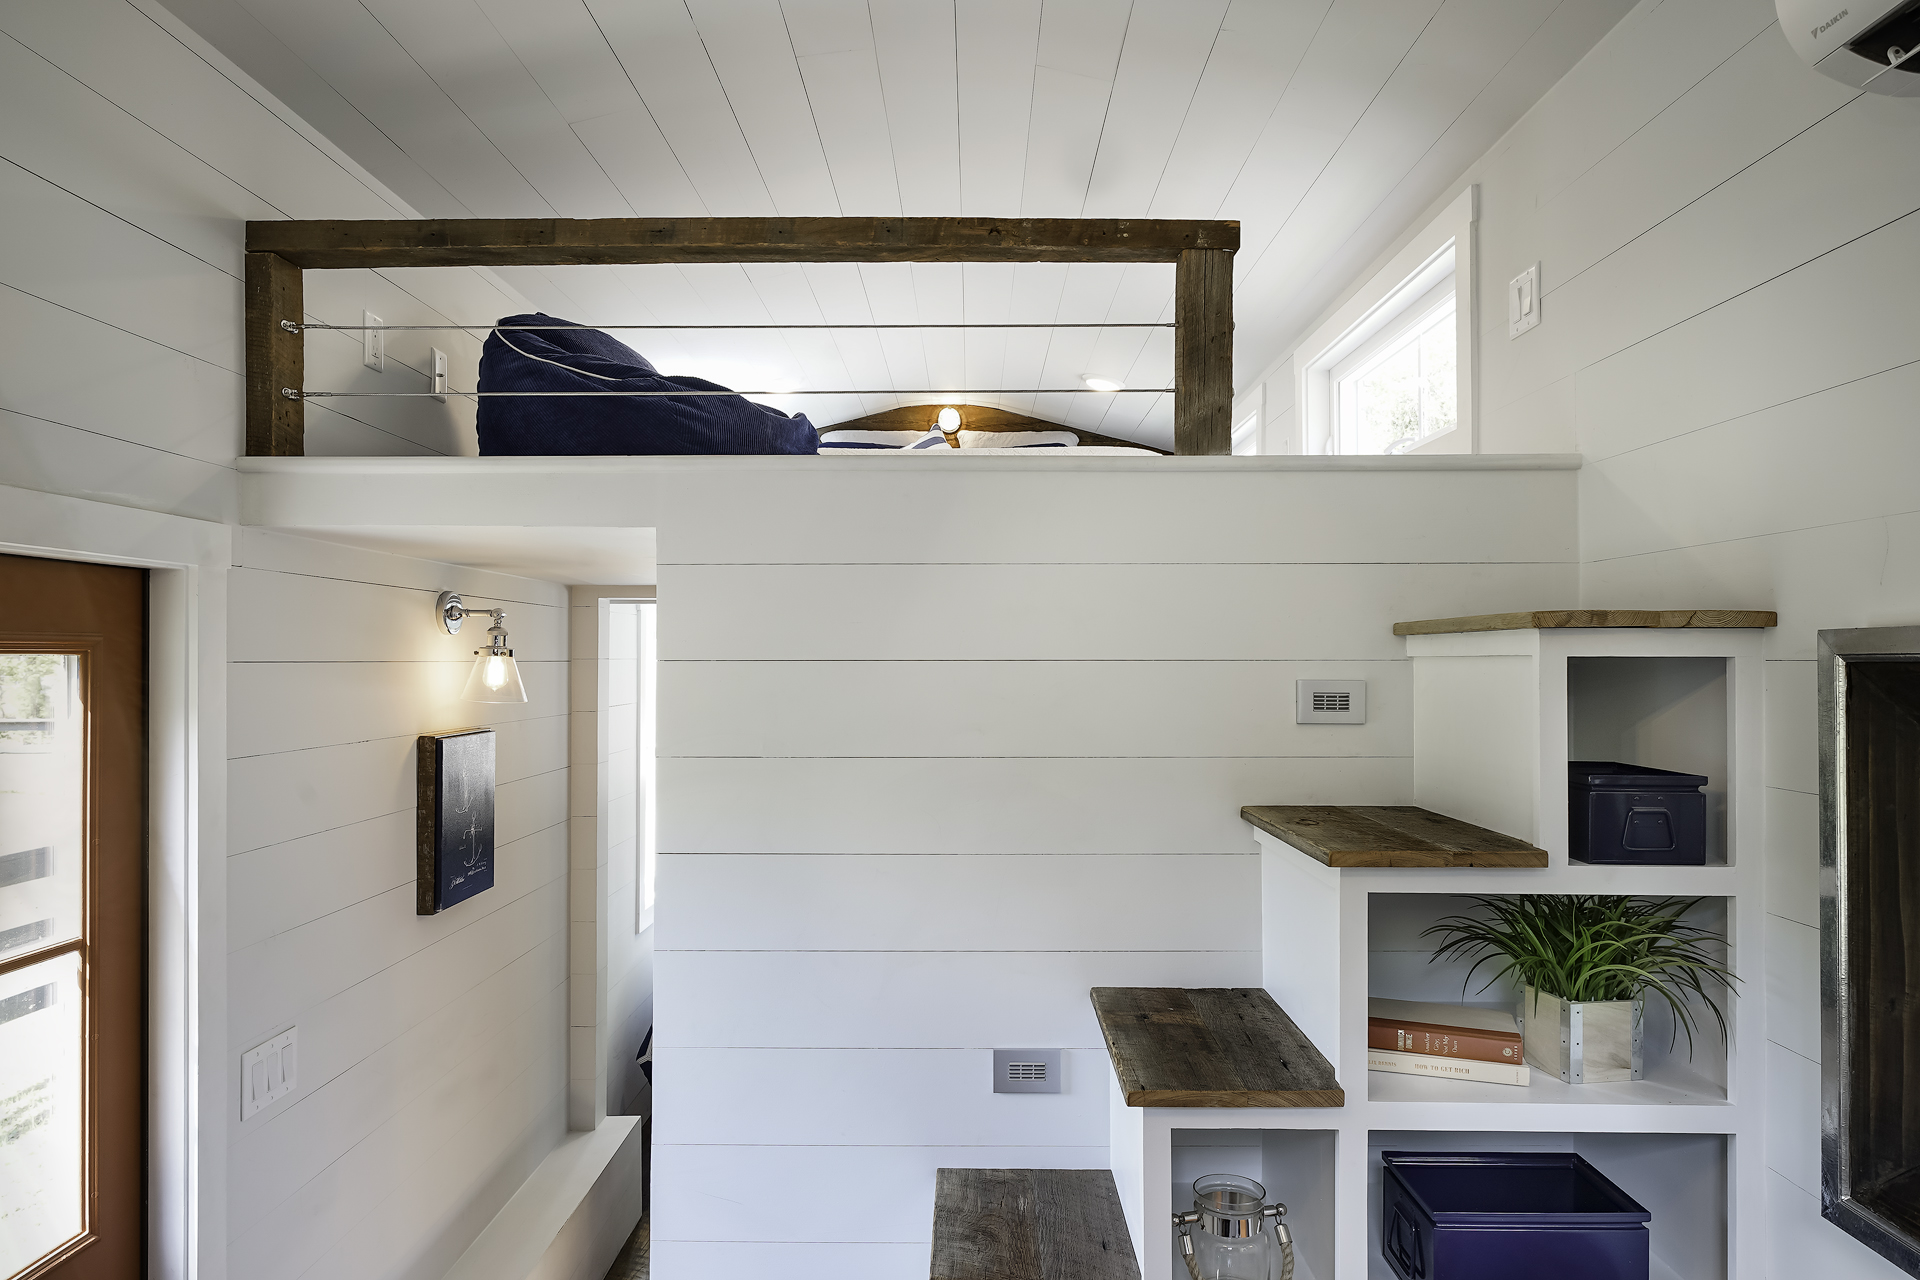 Currently Available For $69,500, The 280 Square Foot U201cIndigou201d Tiny House  From Driftwood Homes USA Allows Lovers A Bit Of Privacy With A Separate  Bedroom ...